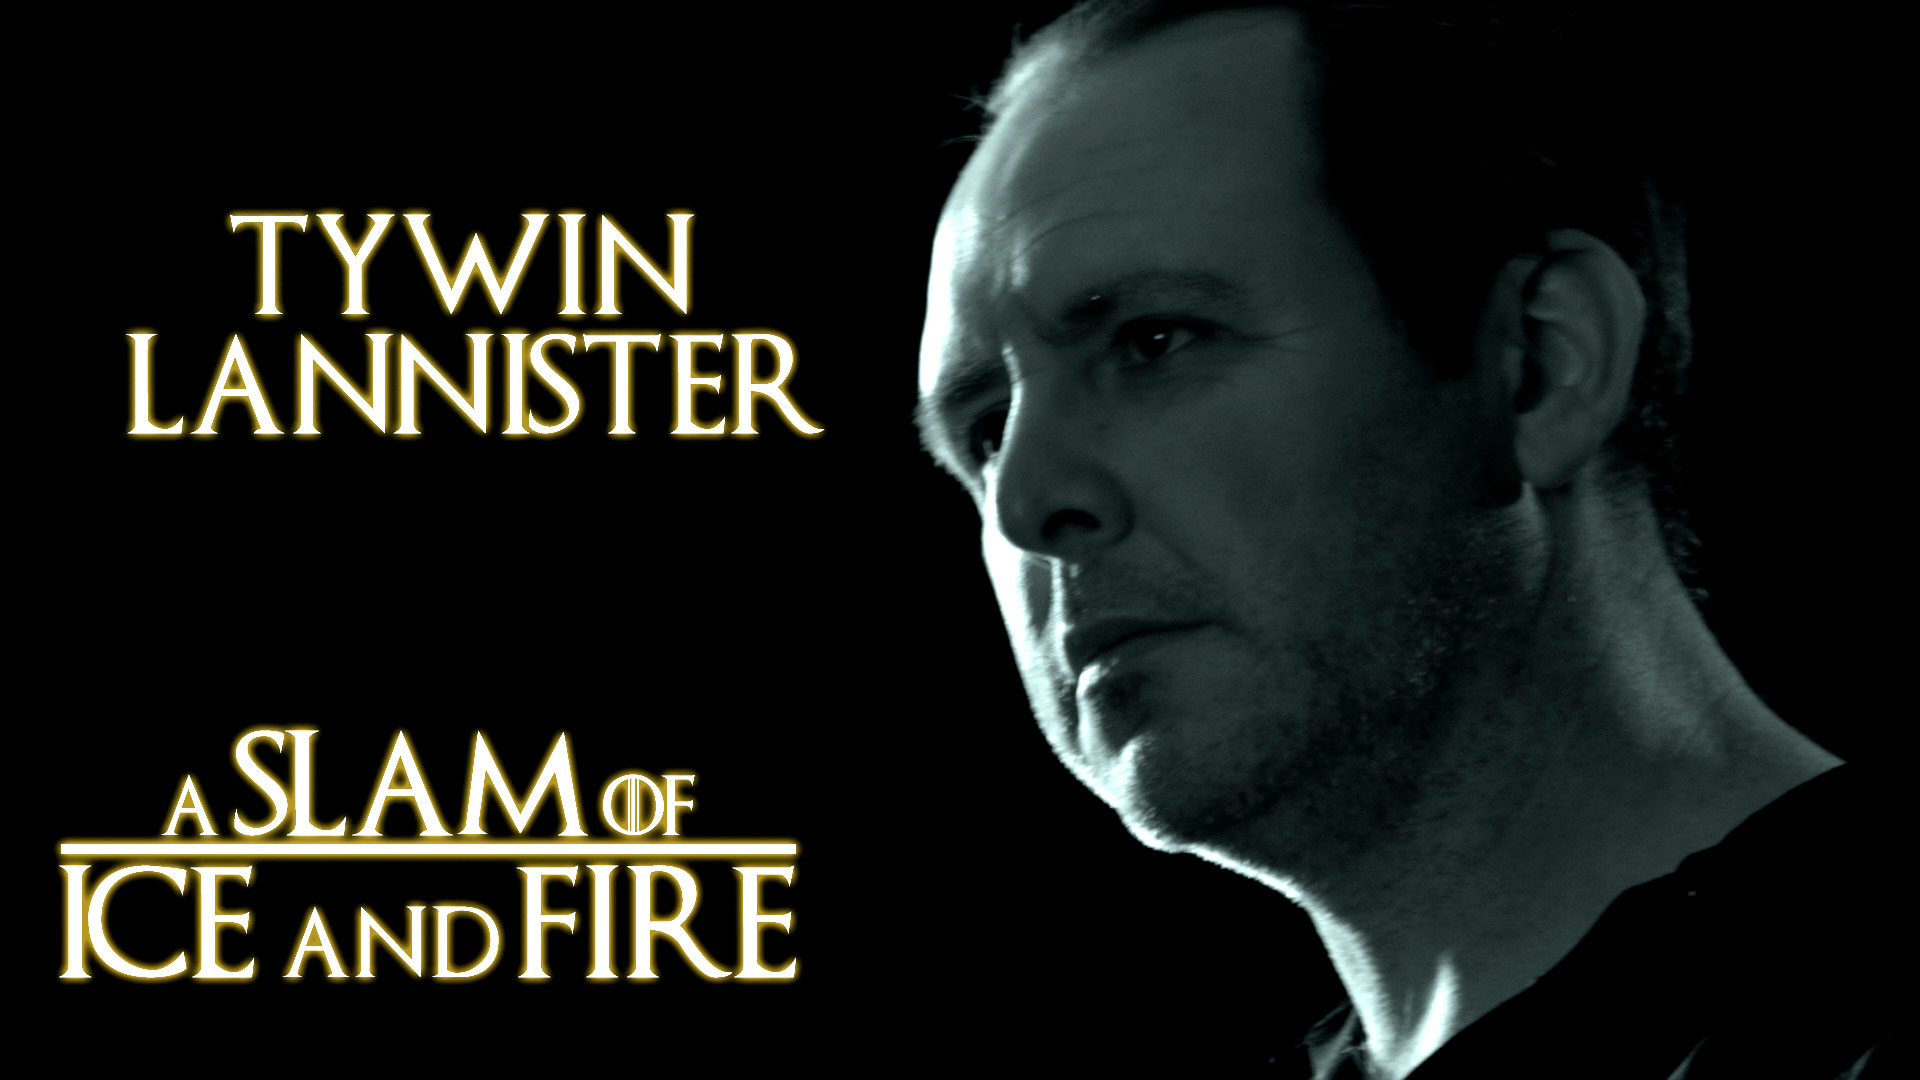 Tywin Lannister - A Slam of Ice and Fire || Spoken Word